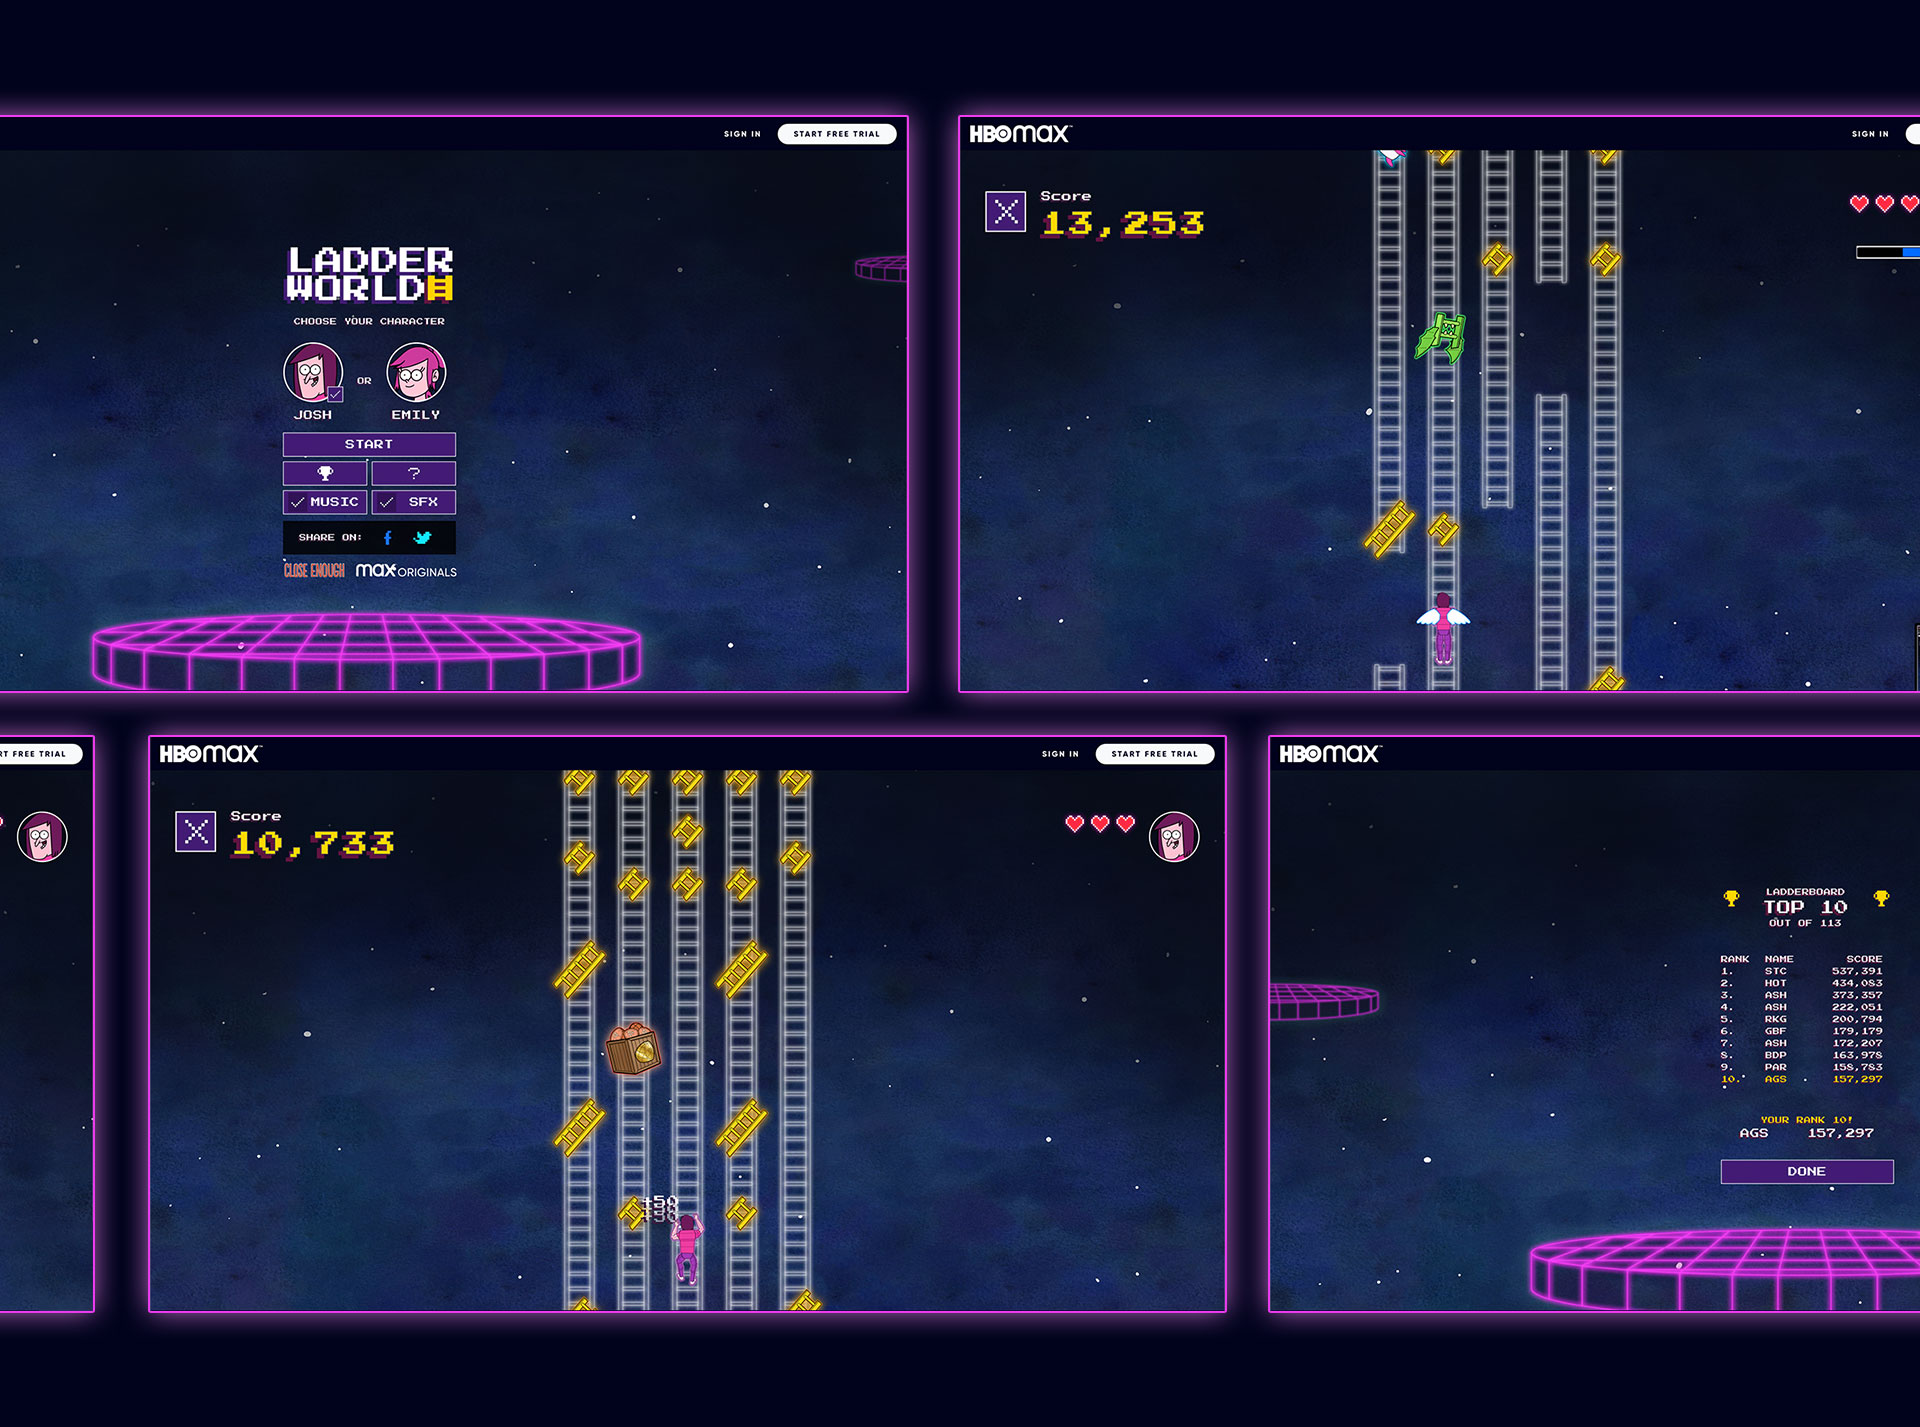 Ladder World screenshots.